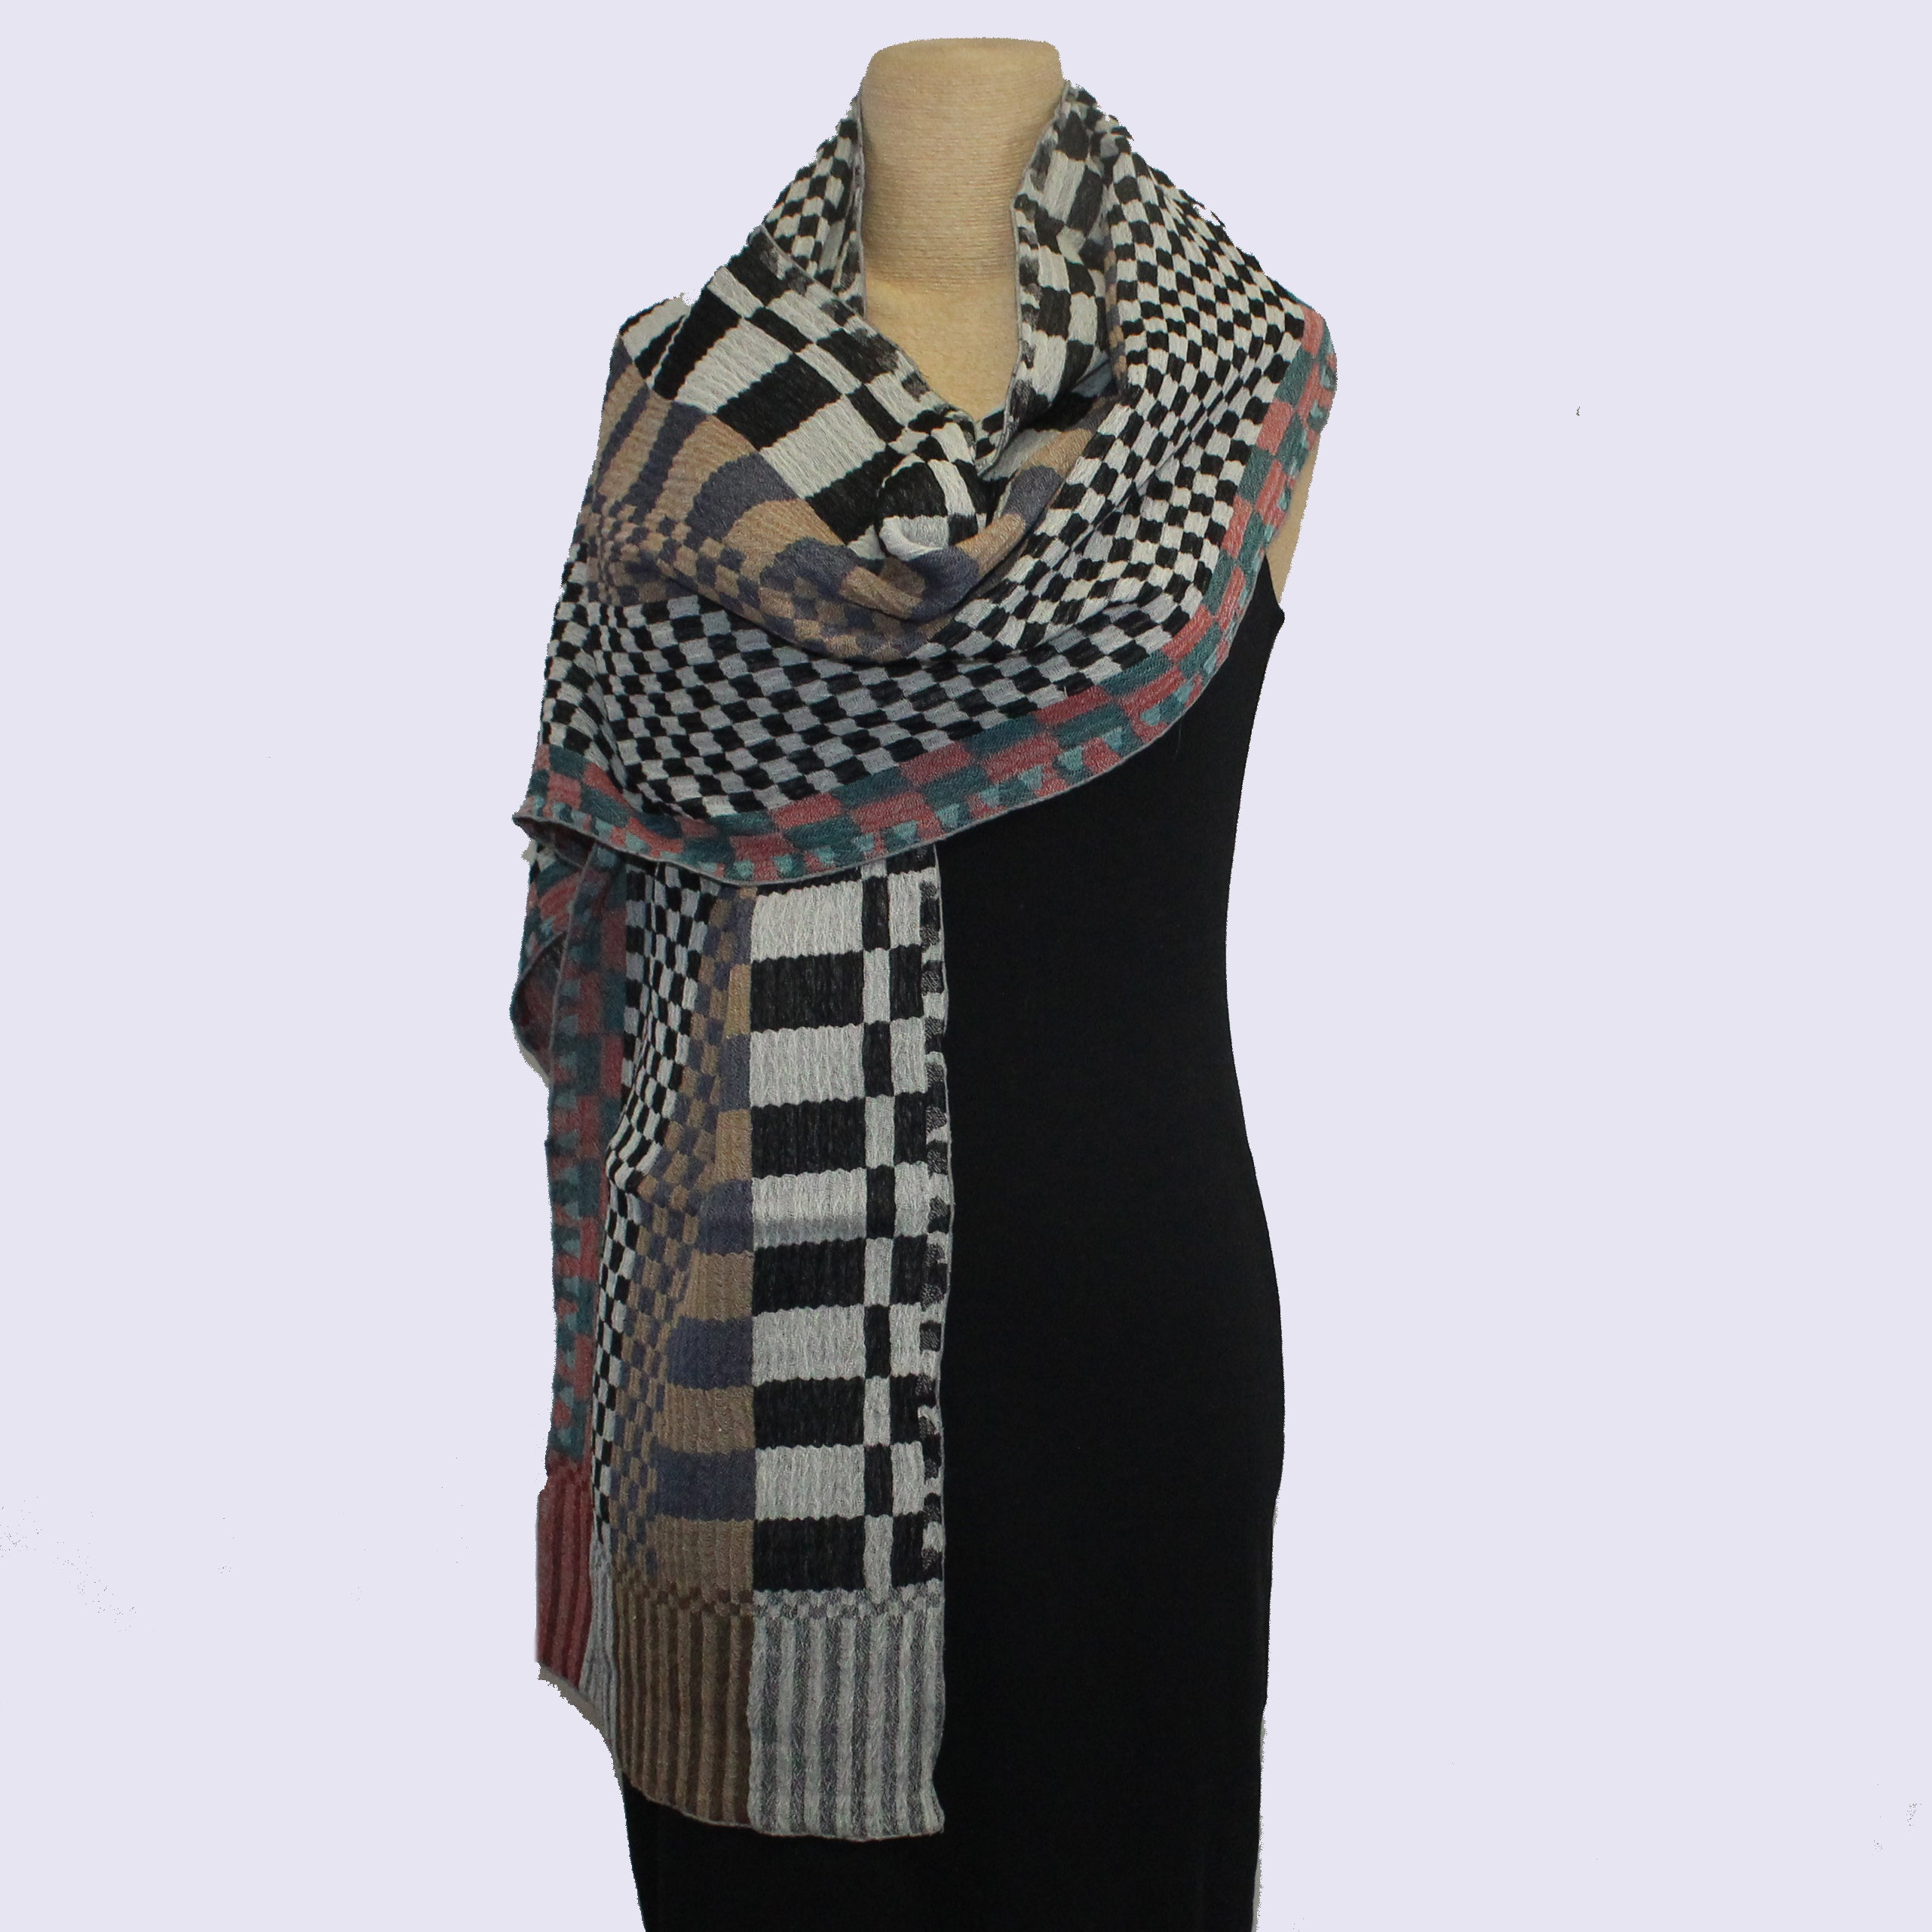 Nuno Shawl, Narrow, Checkered Check, Multicolored